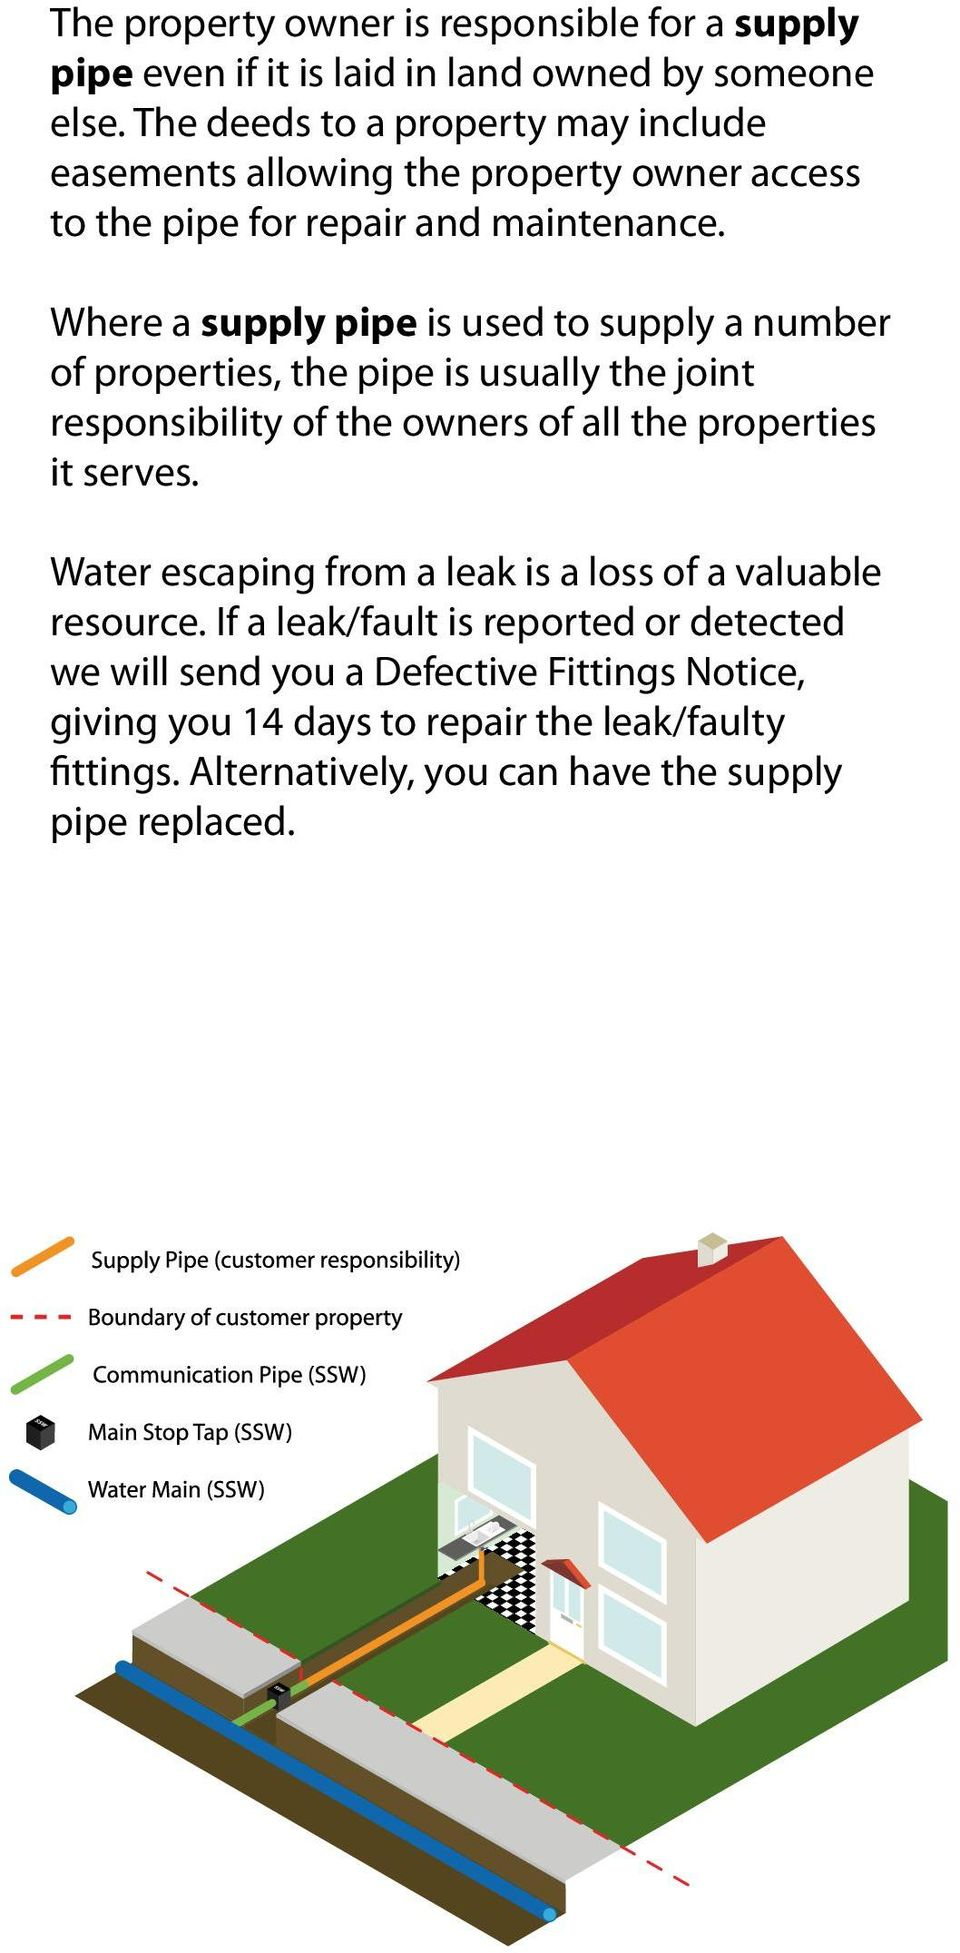 Where a supply pipe is used to supply a number of properties, the pipe is usually the joint responsibility of the owners of all the properties it serves.